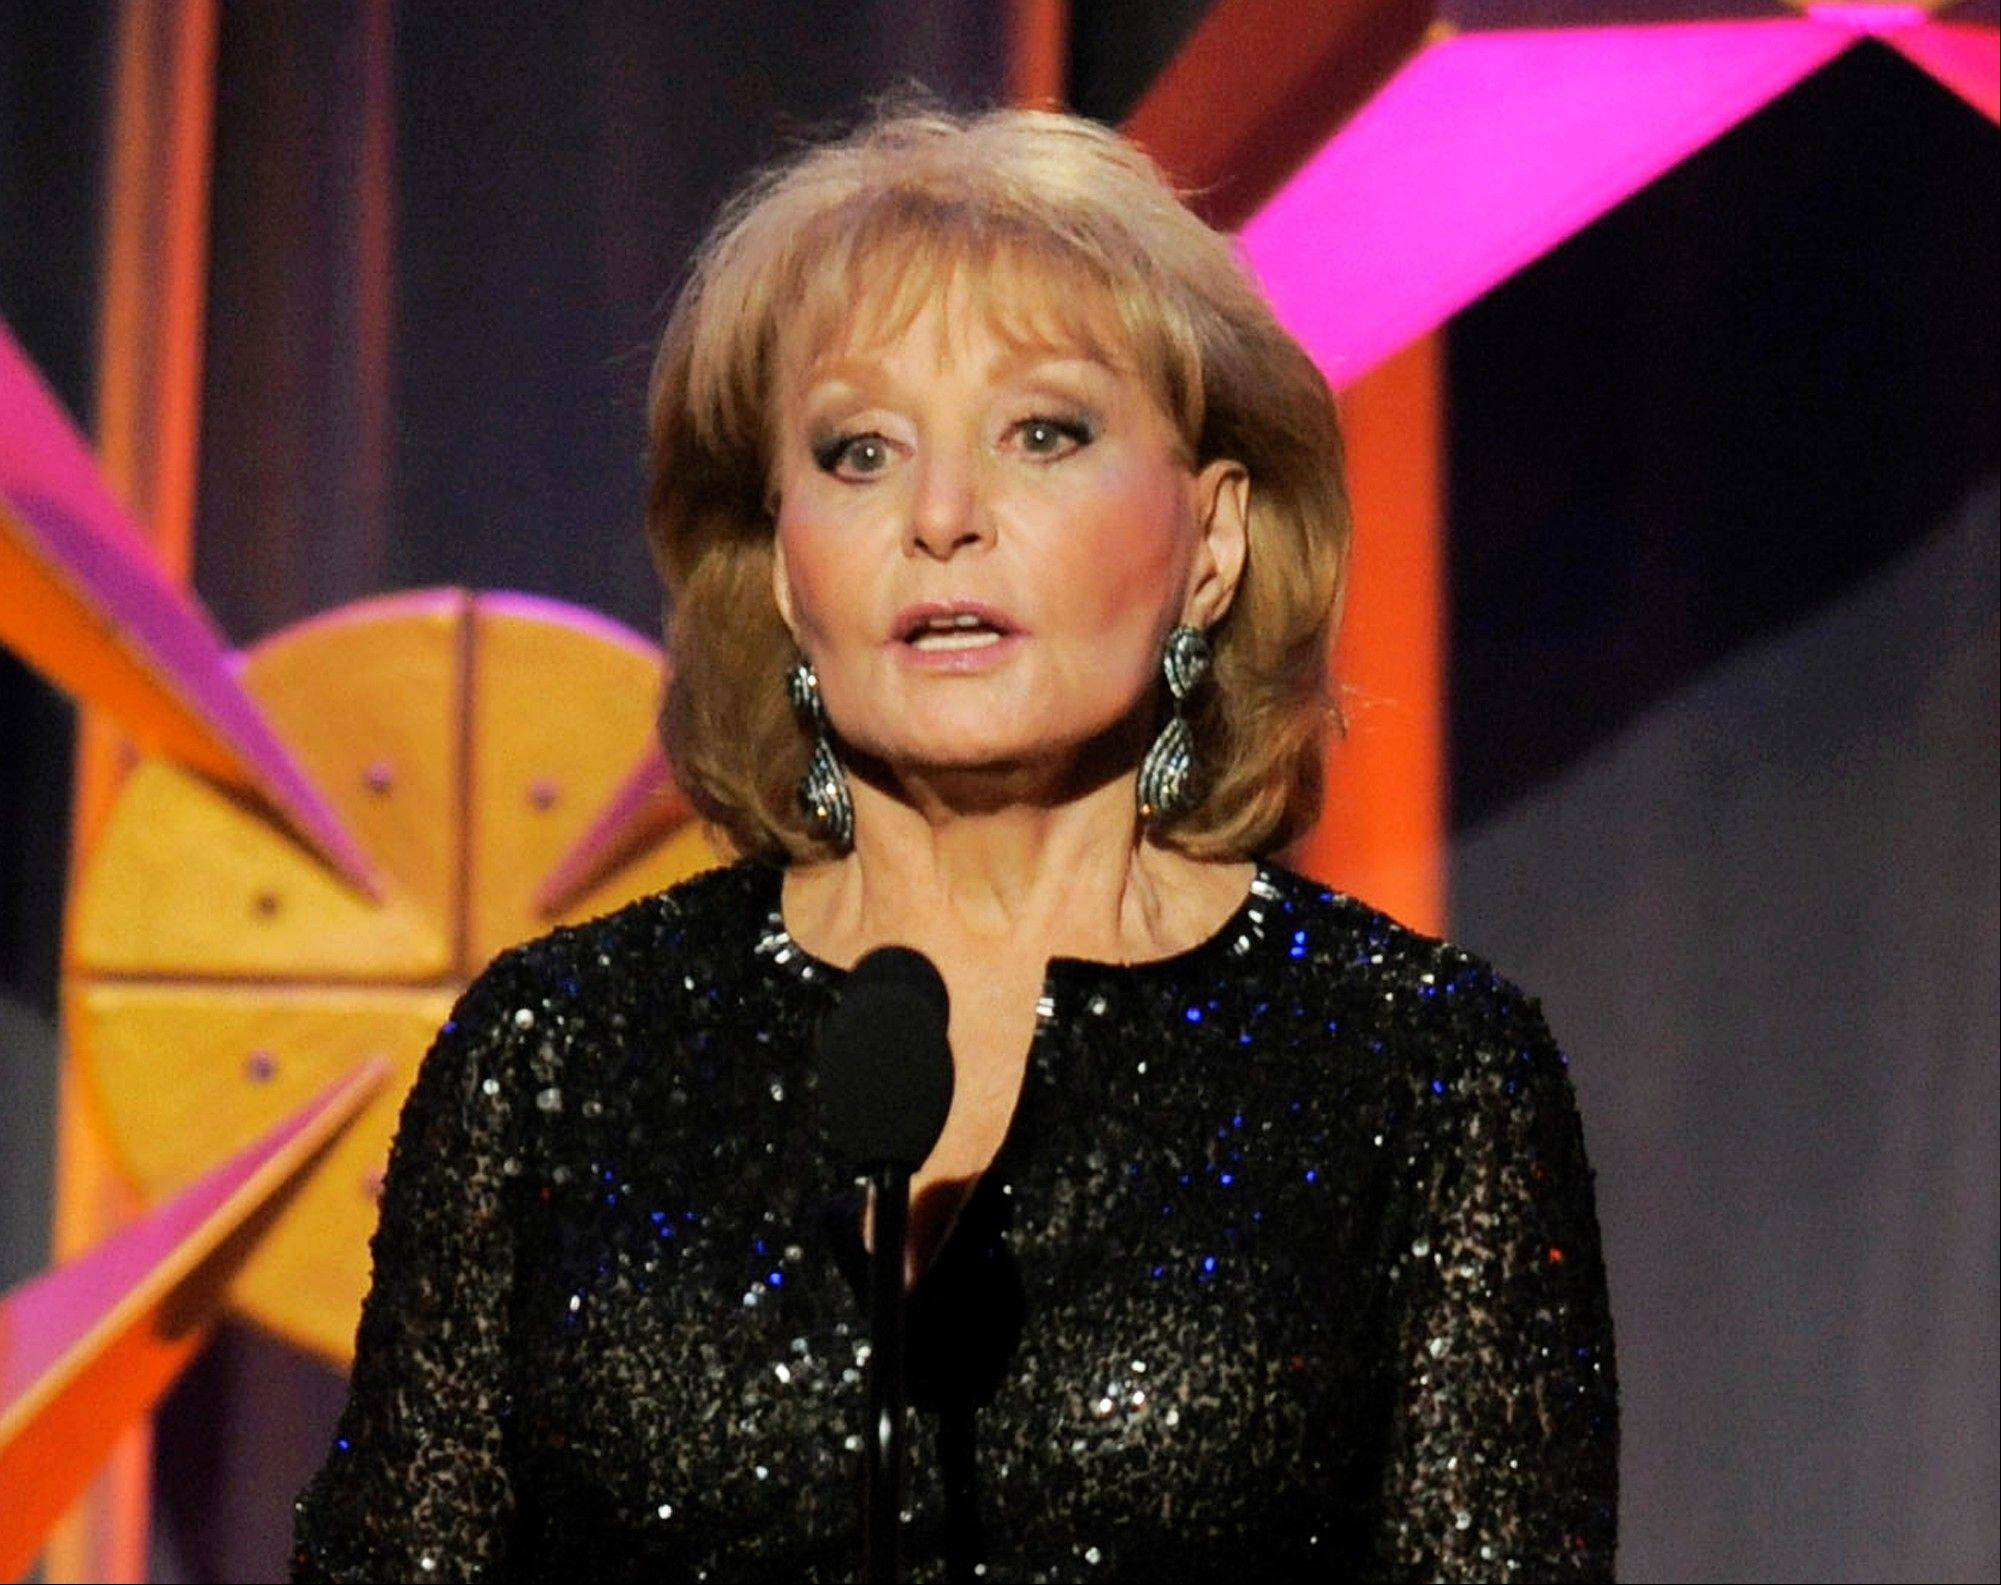 Barbara Walters has the chickenpox and remains hospitalized more than a week after falling and hitting her head at a pre-inaugural party in Washington on Jan. 19.